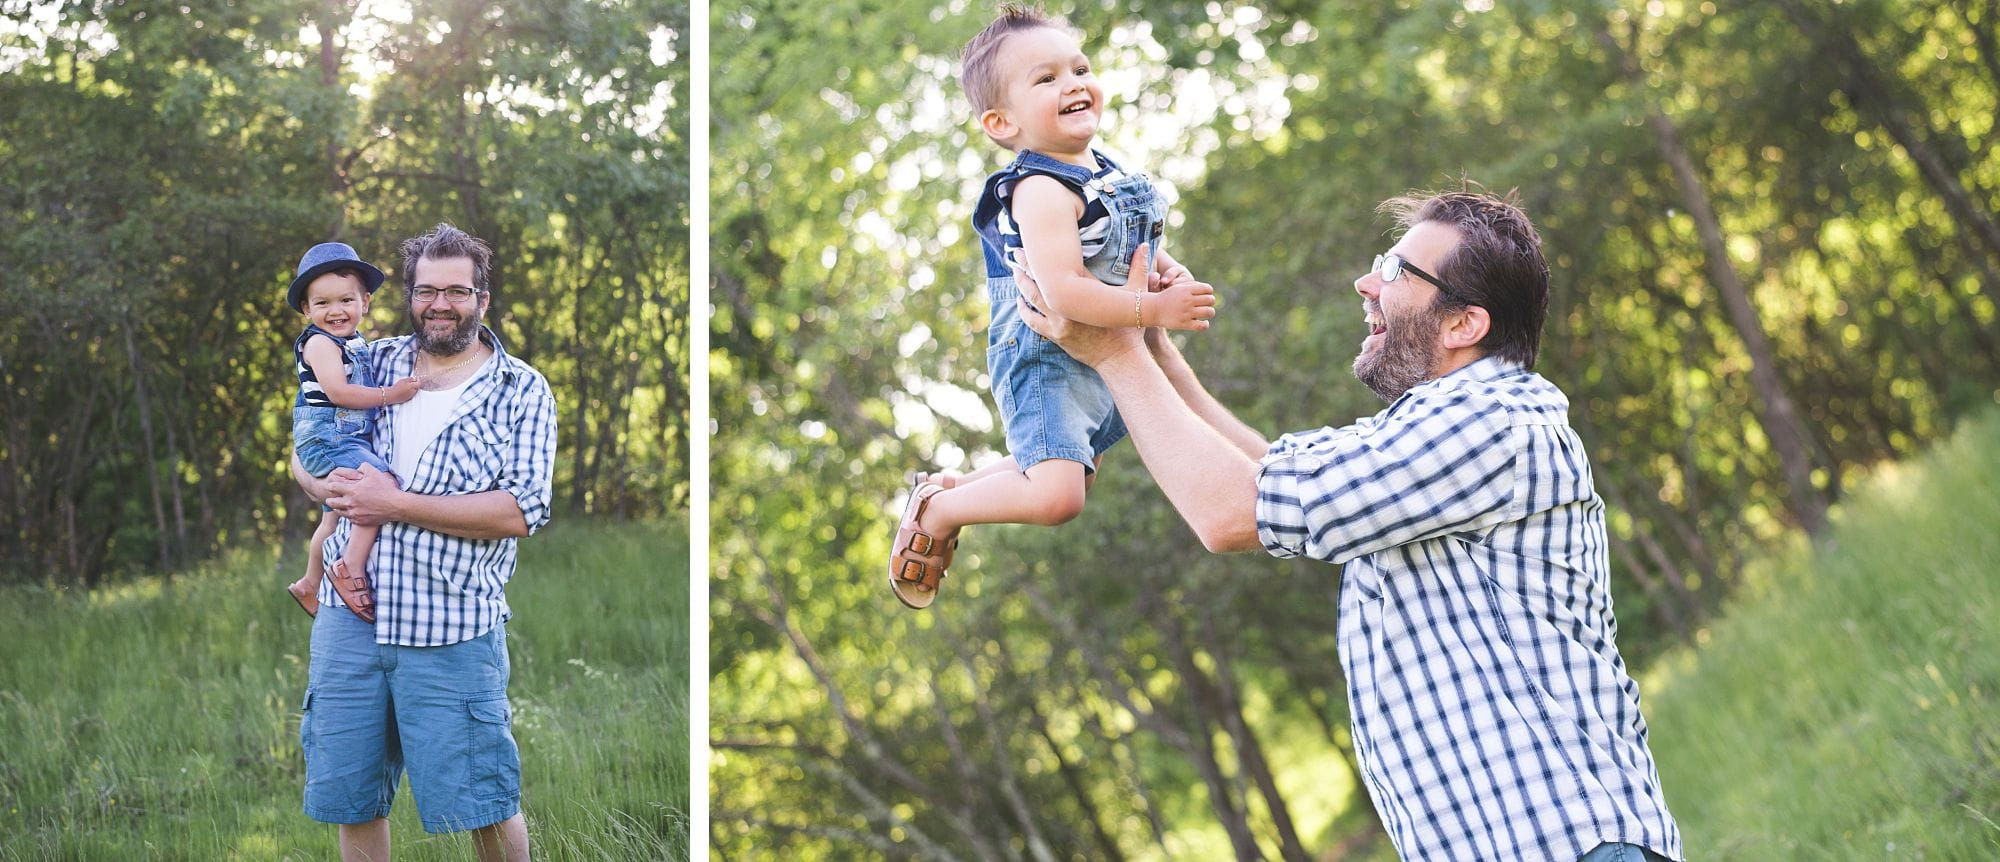 Sweet daddy and me portrait in an outdoor setting